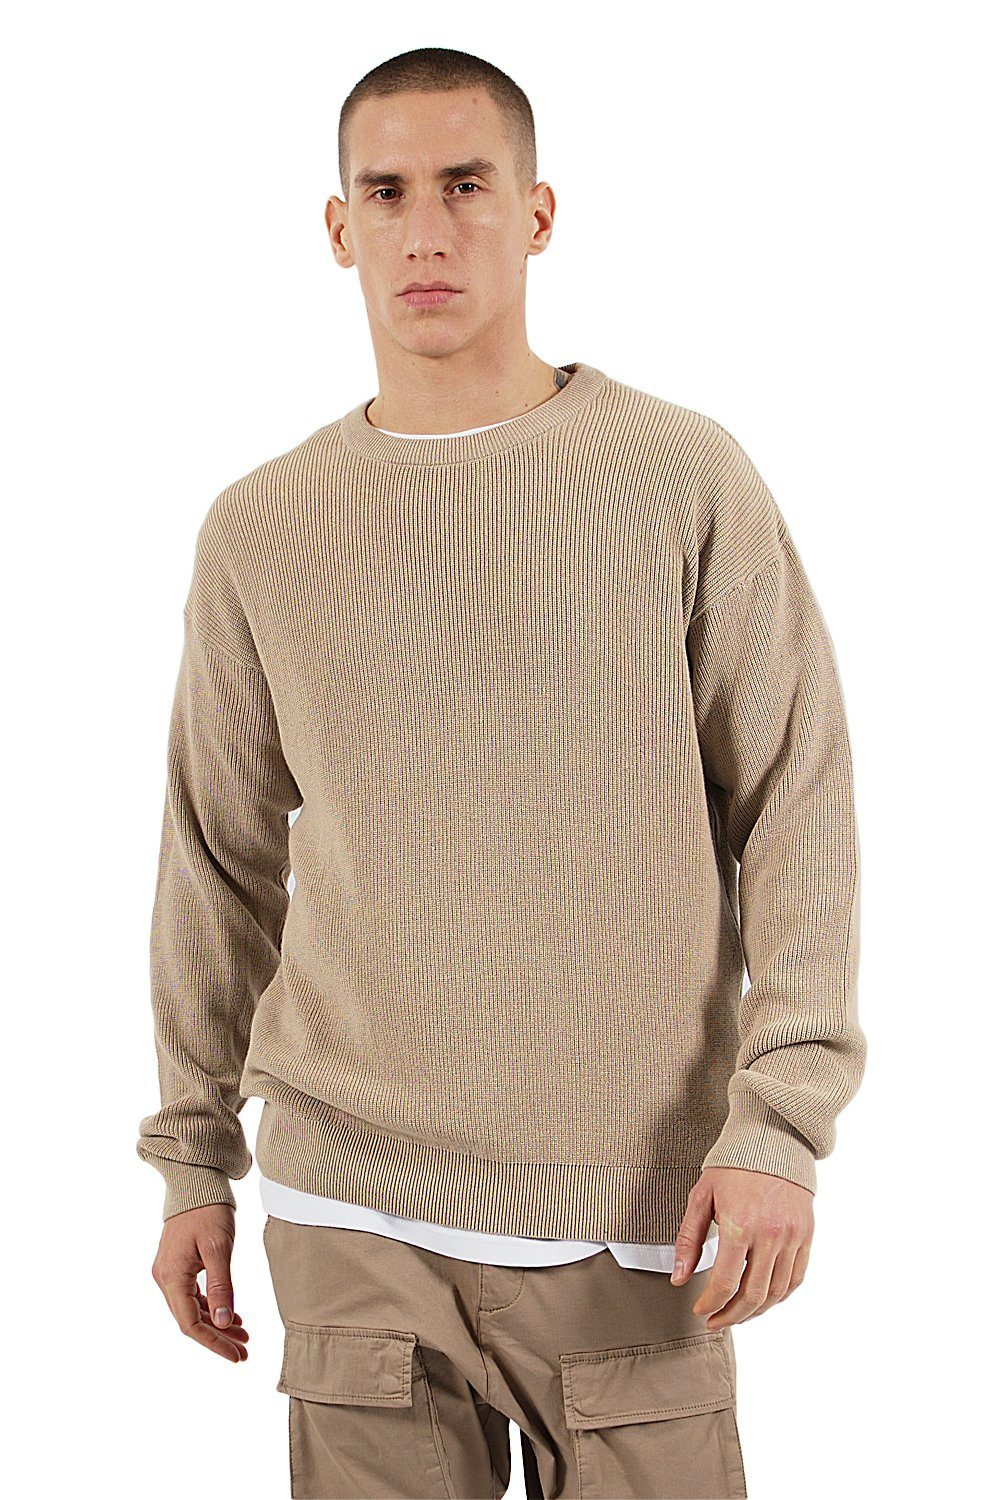 Milan Oversize Knit Sweater Beige SWEATER PEGADOR